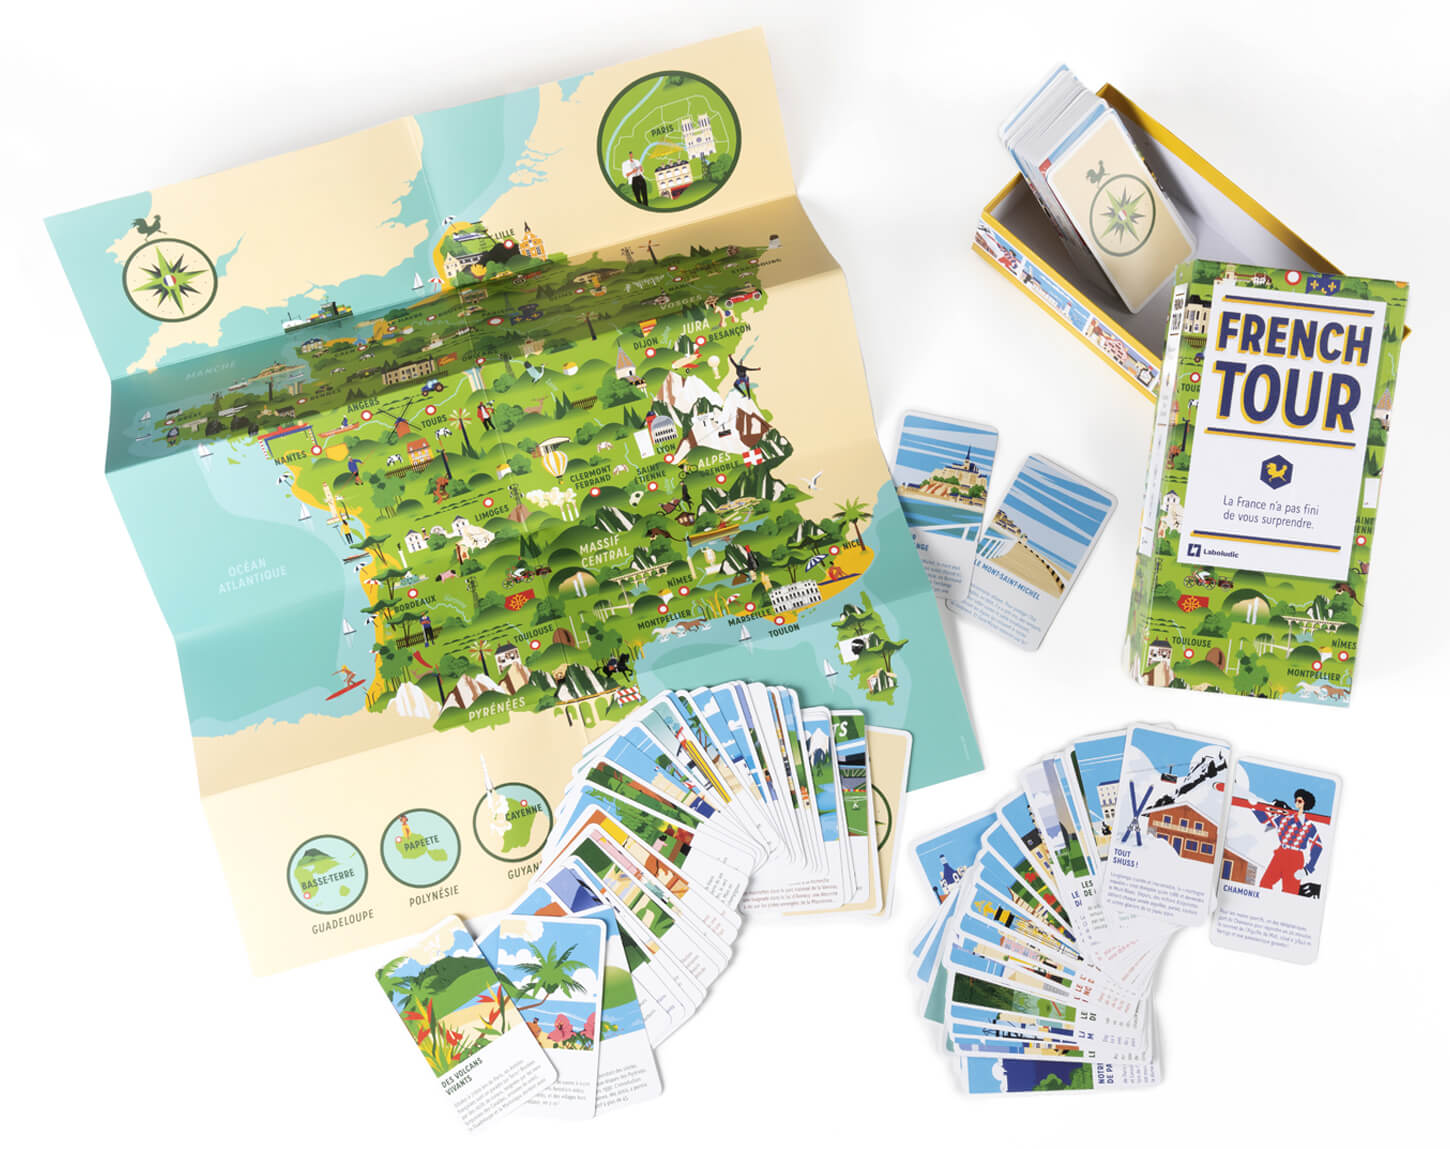 French Tour - Board games